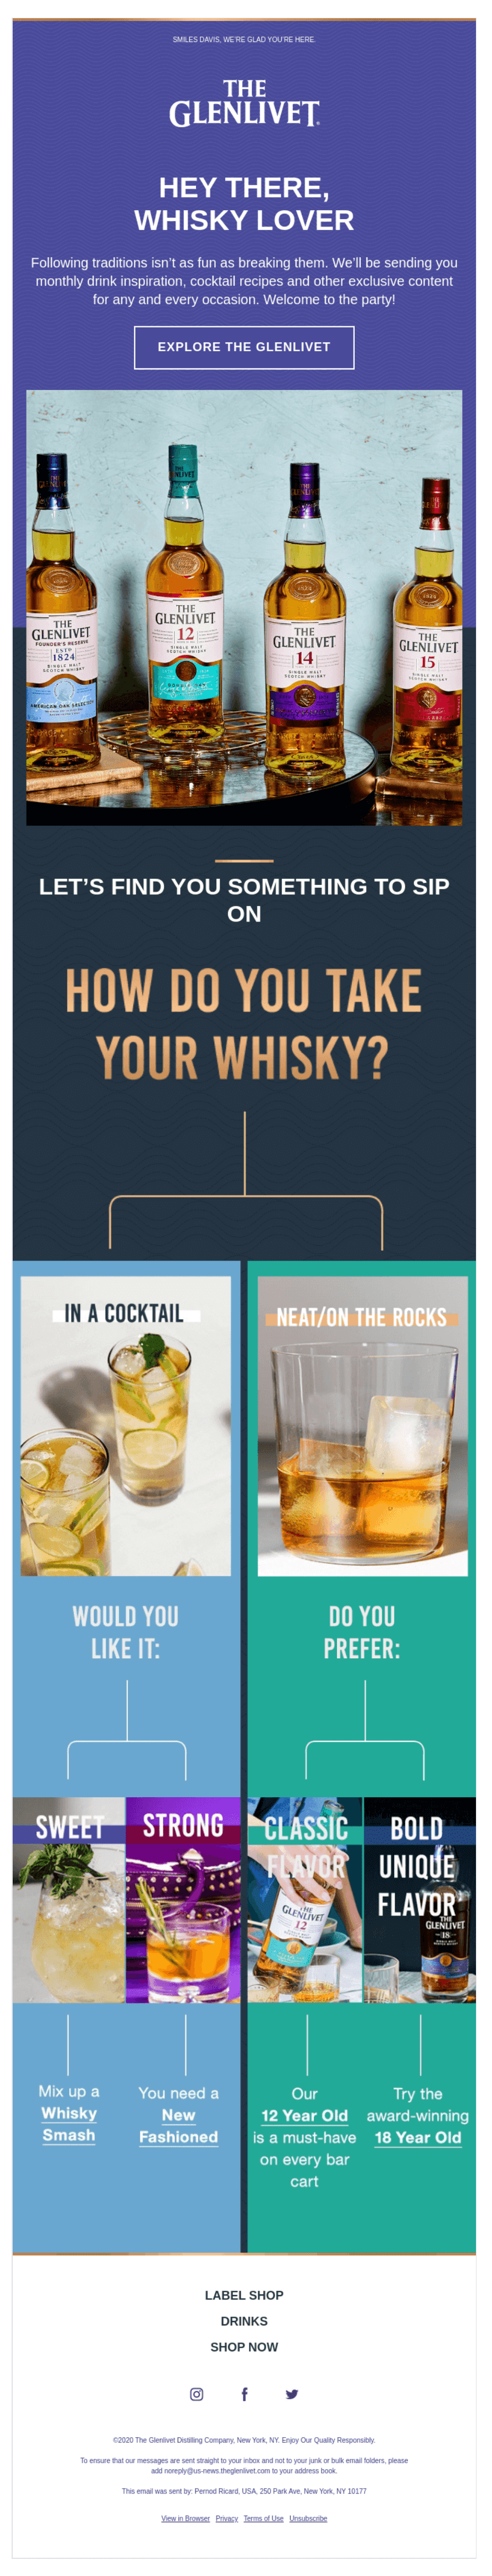 Onboarding email example from The Glenlivet using a quiz